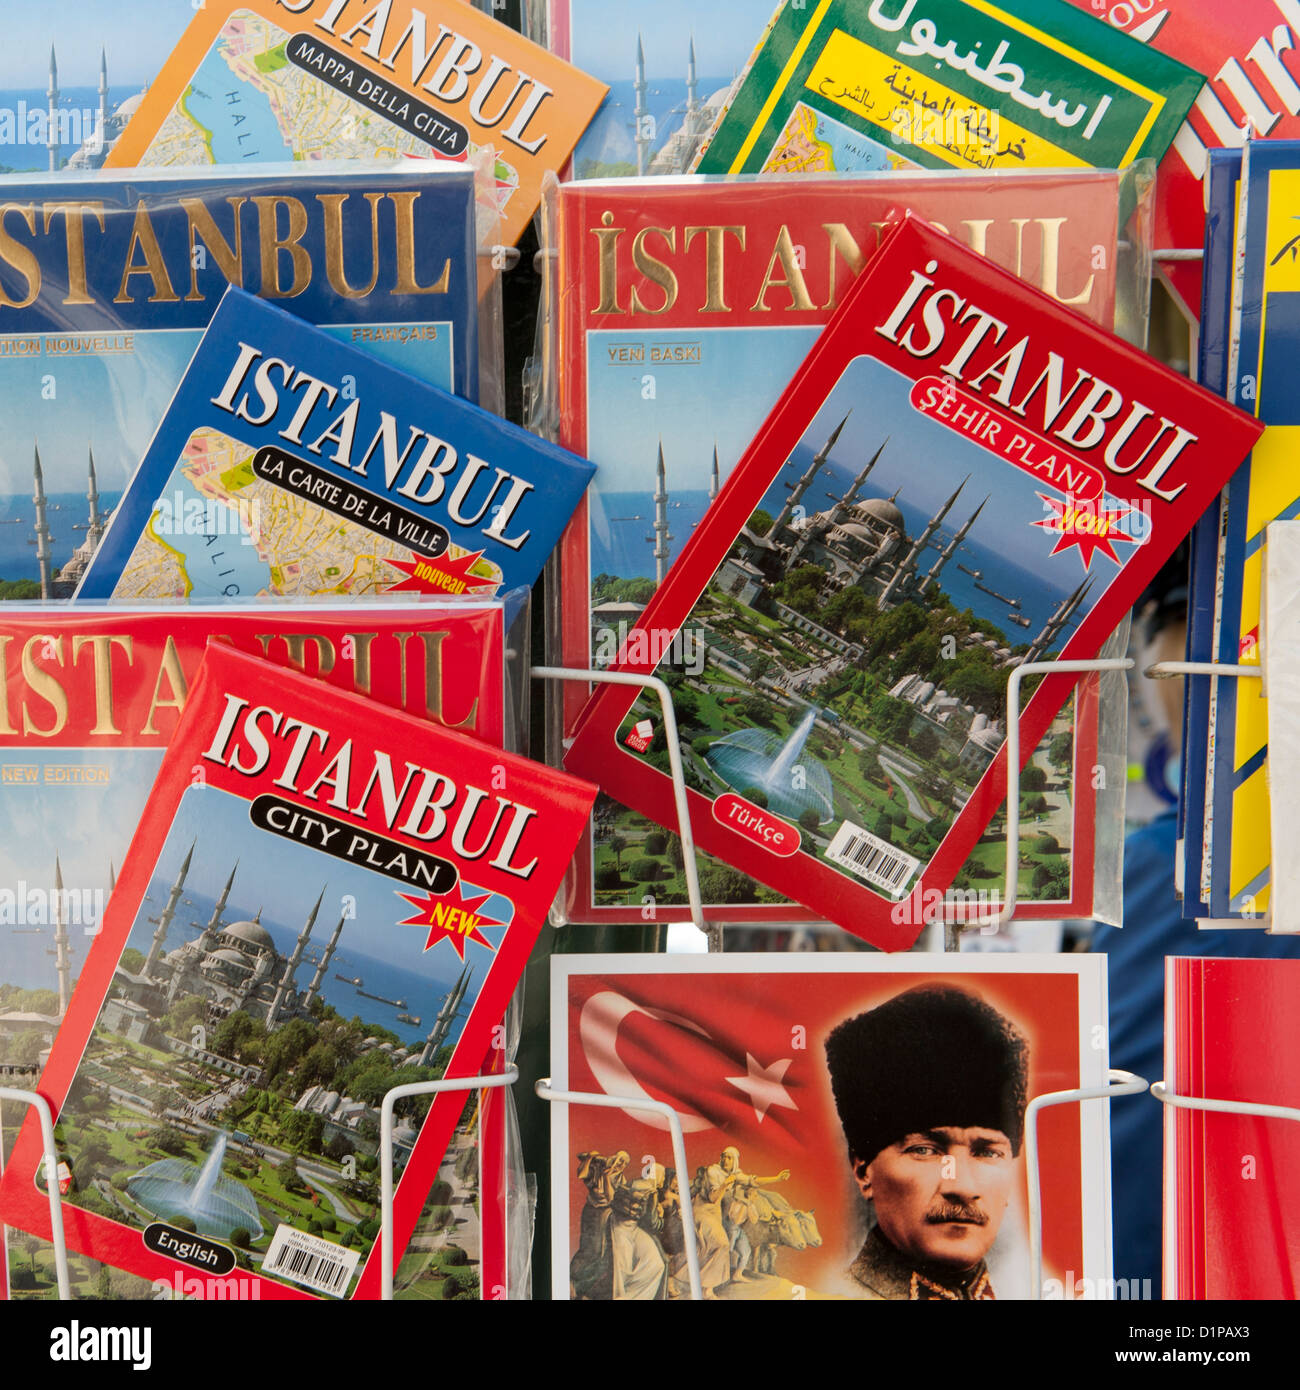 Guide books at a book stall, Istanbul, Turkey - Stock Image